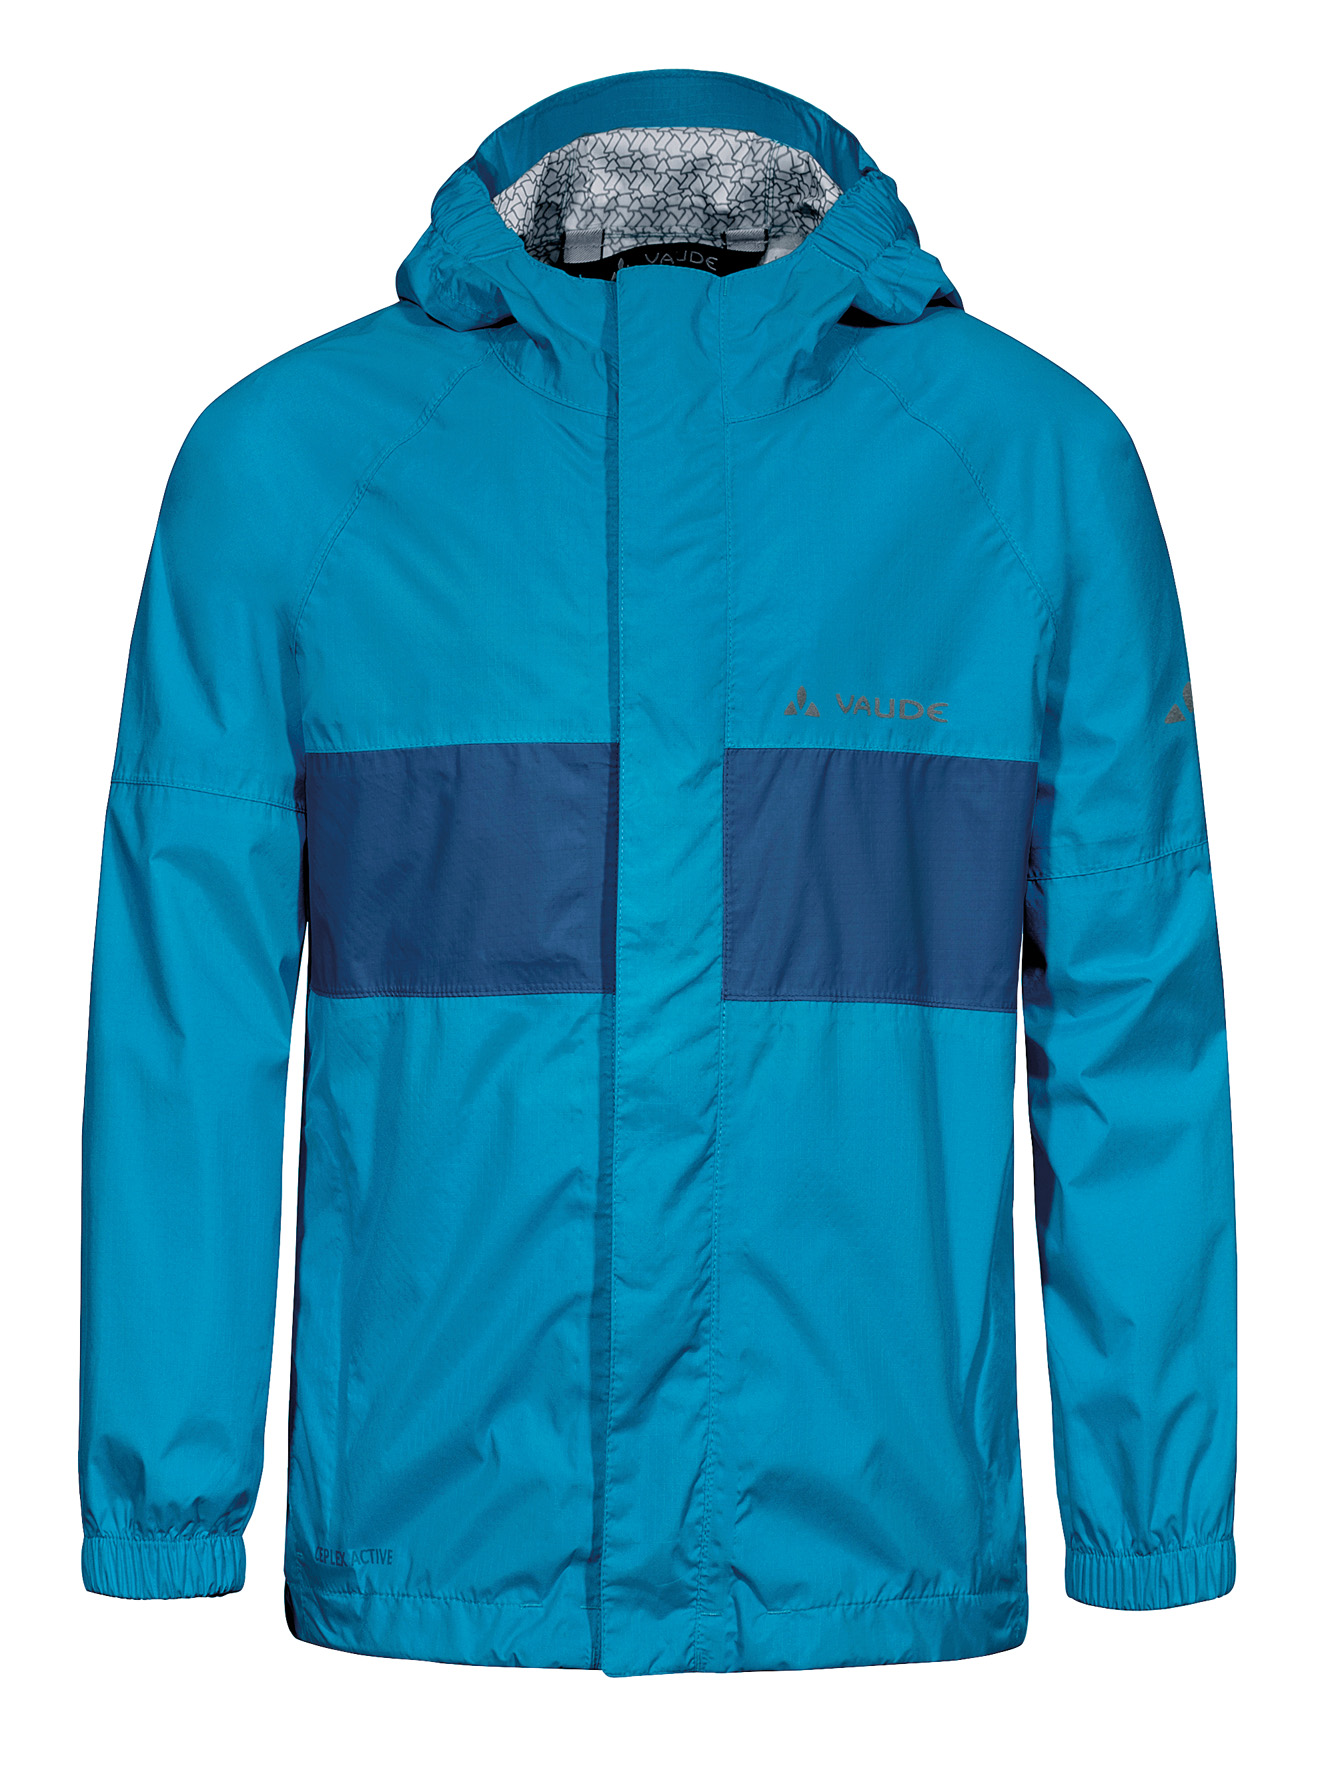 Kids Grody Jacket II teal blue Größe 110/116 - schneider-sports